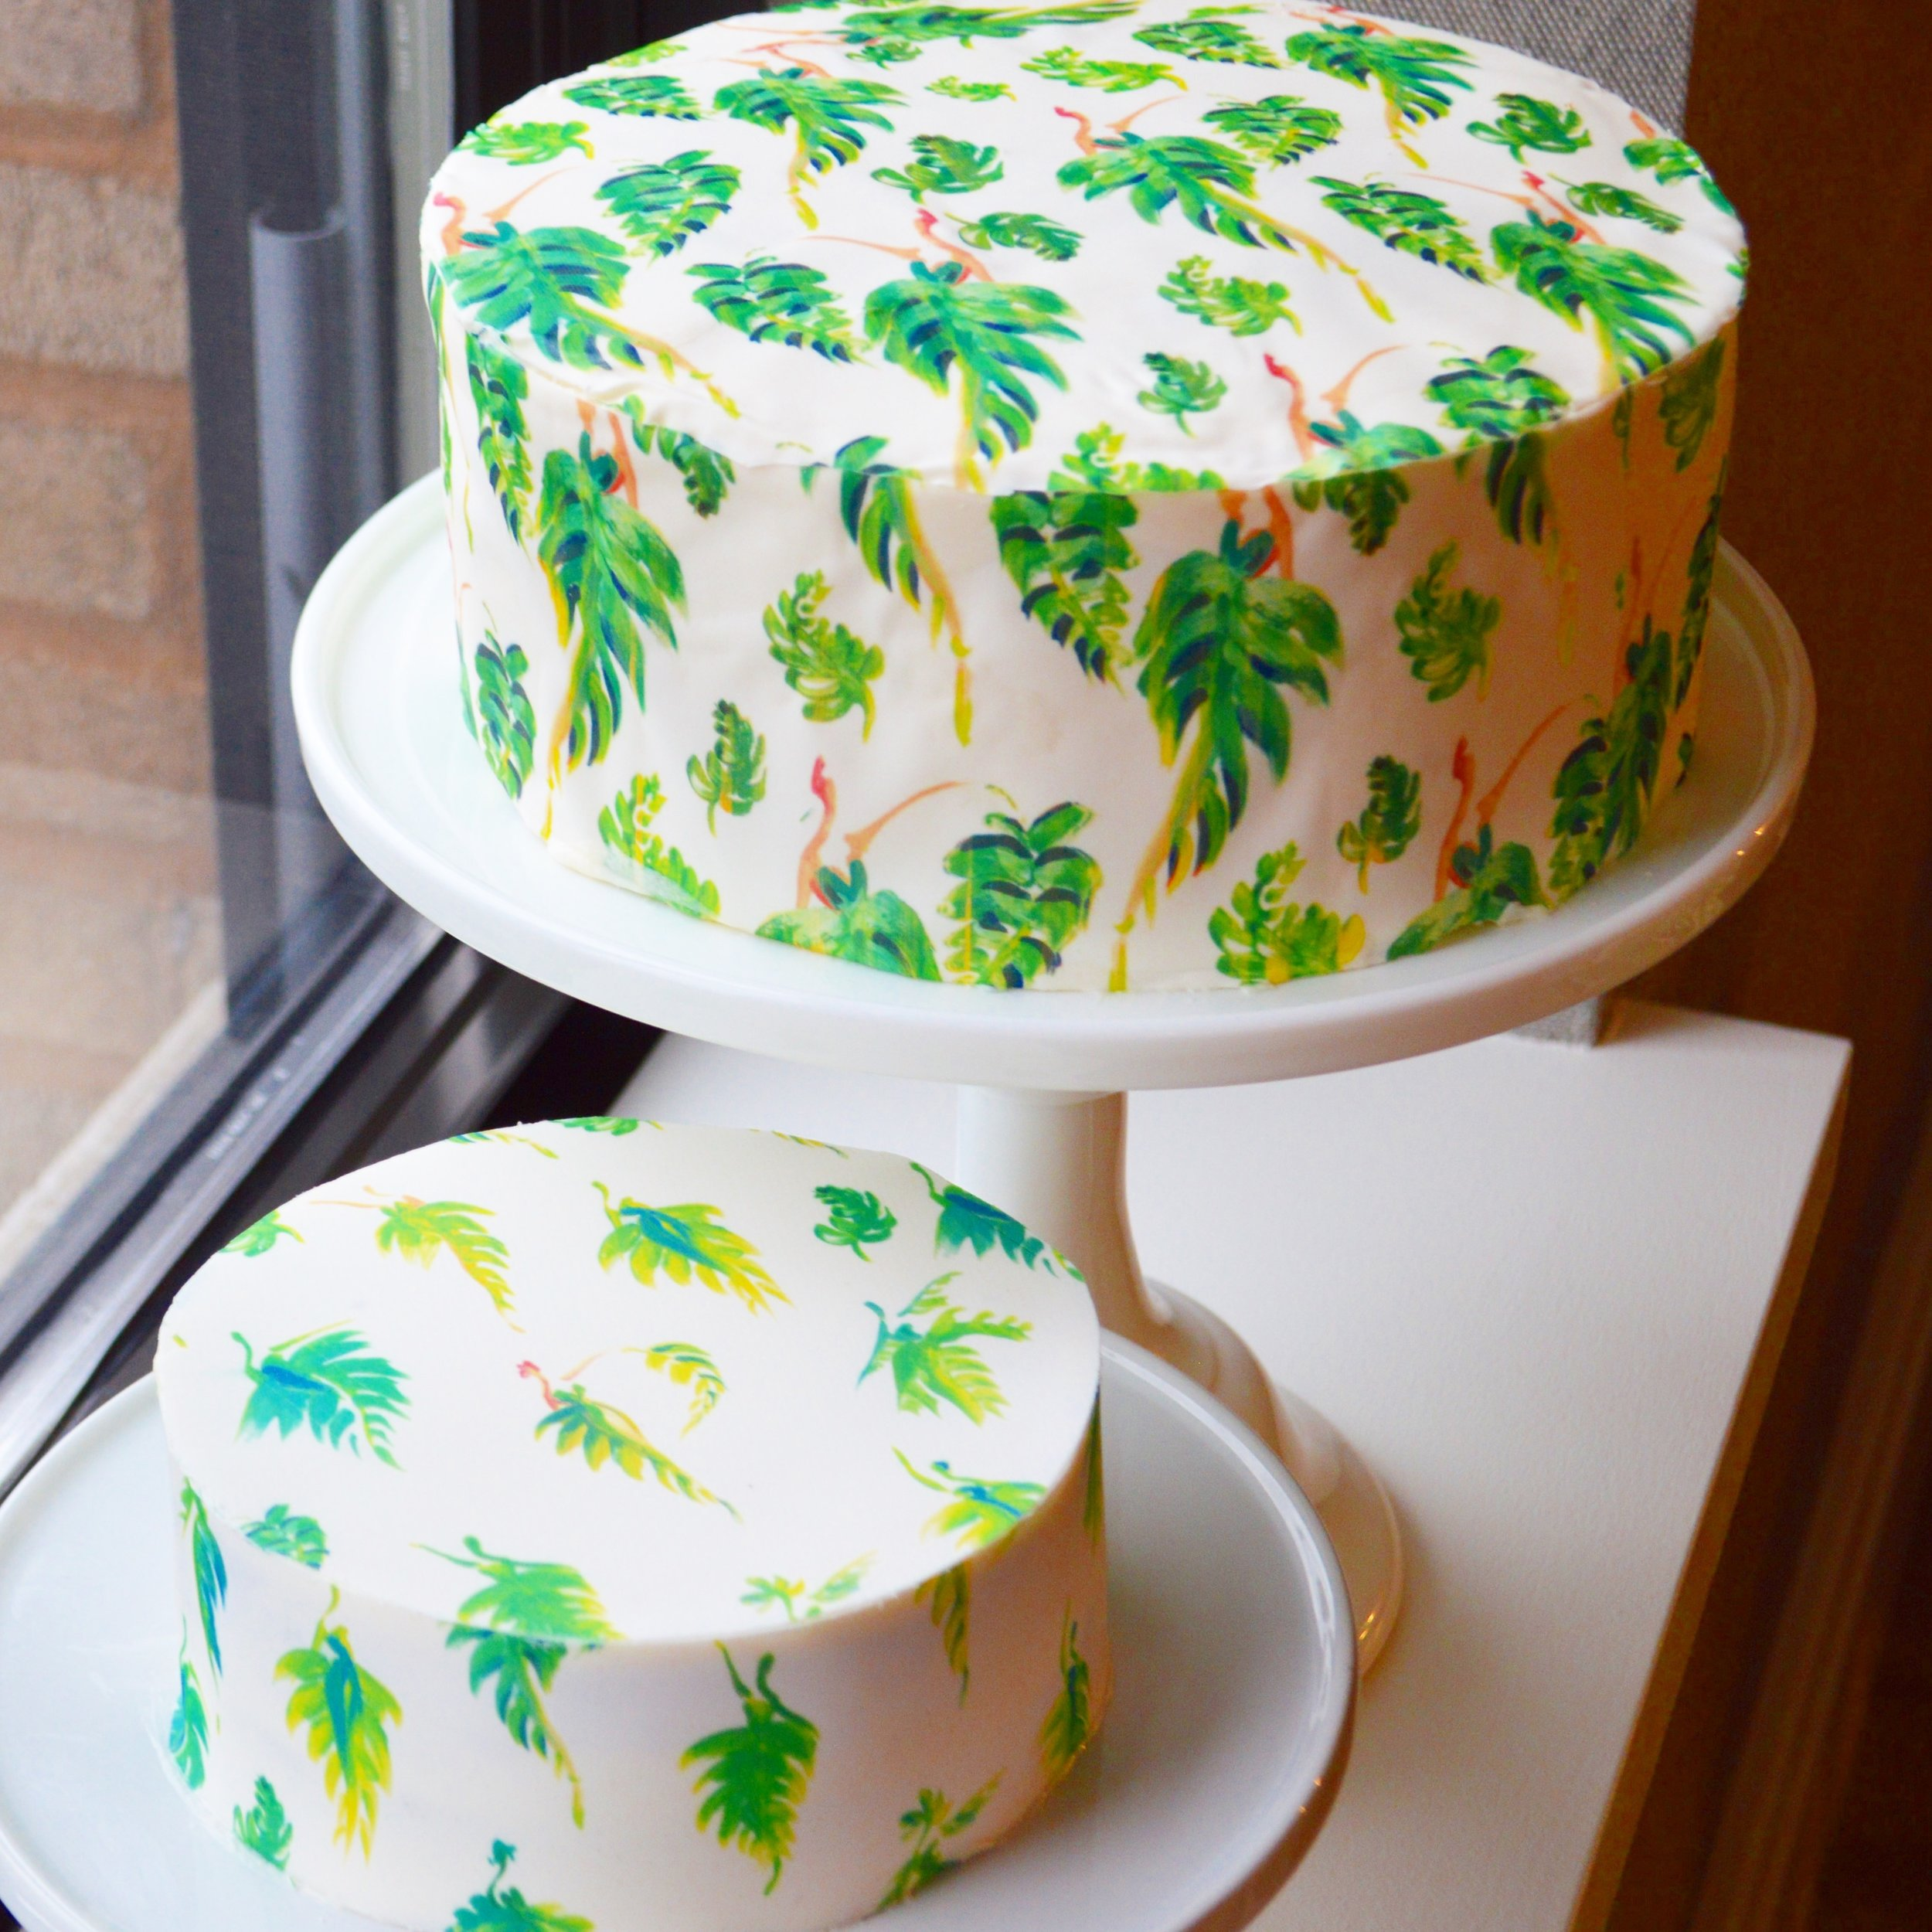 Matcha Cake covered with Palm Leaf Print